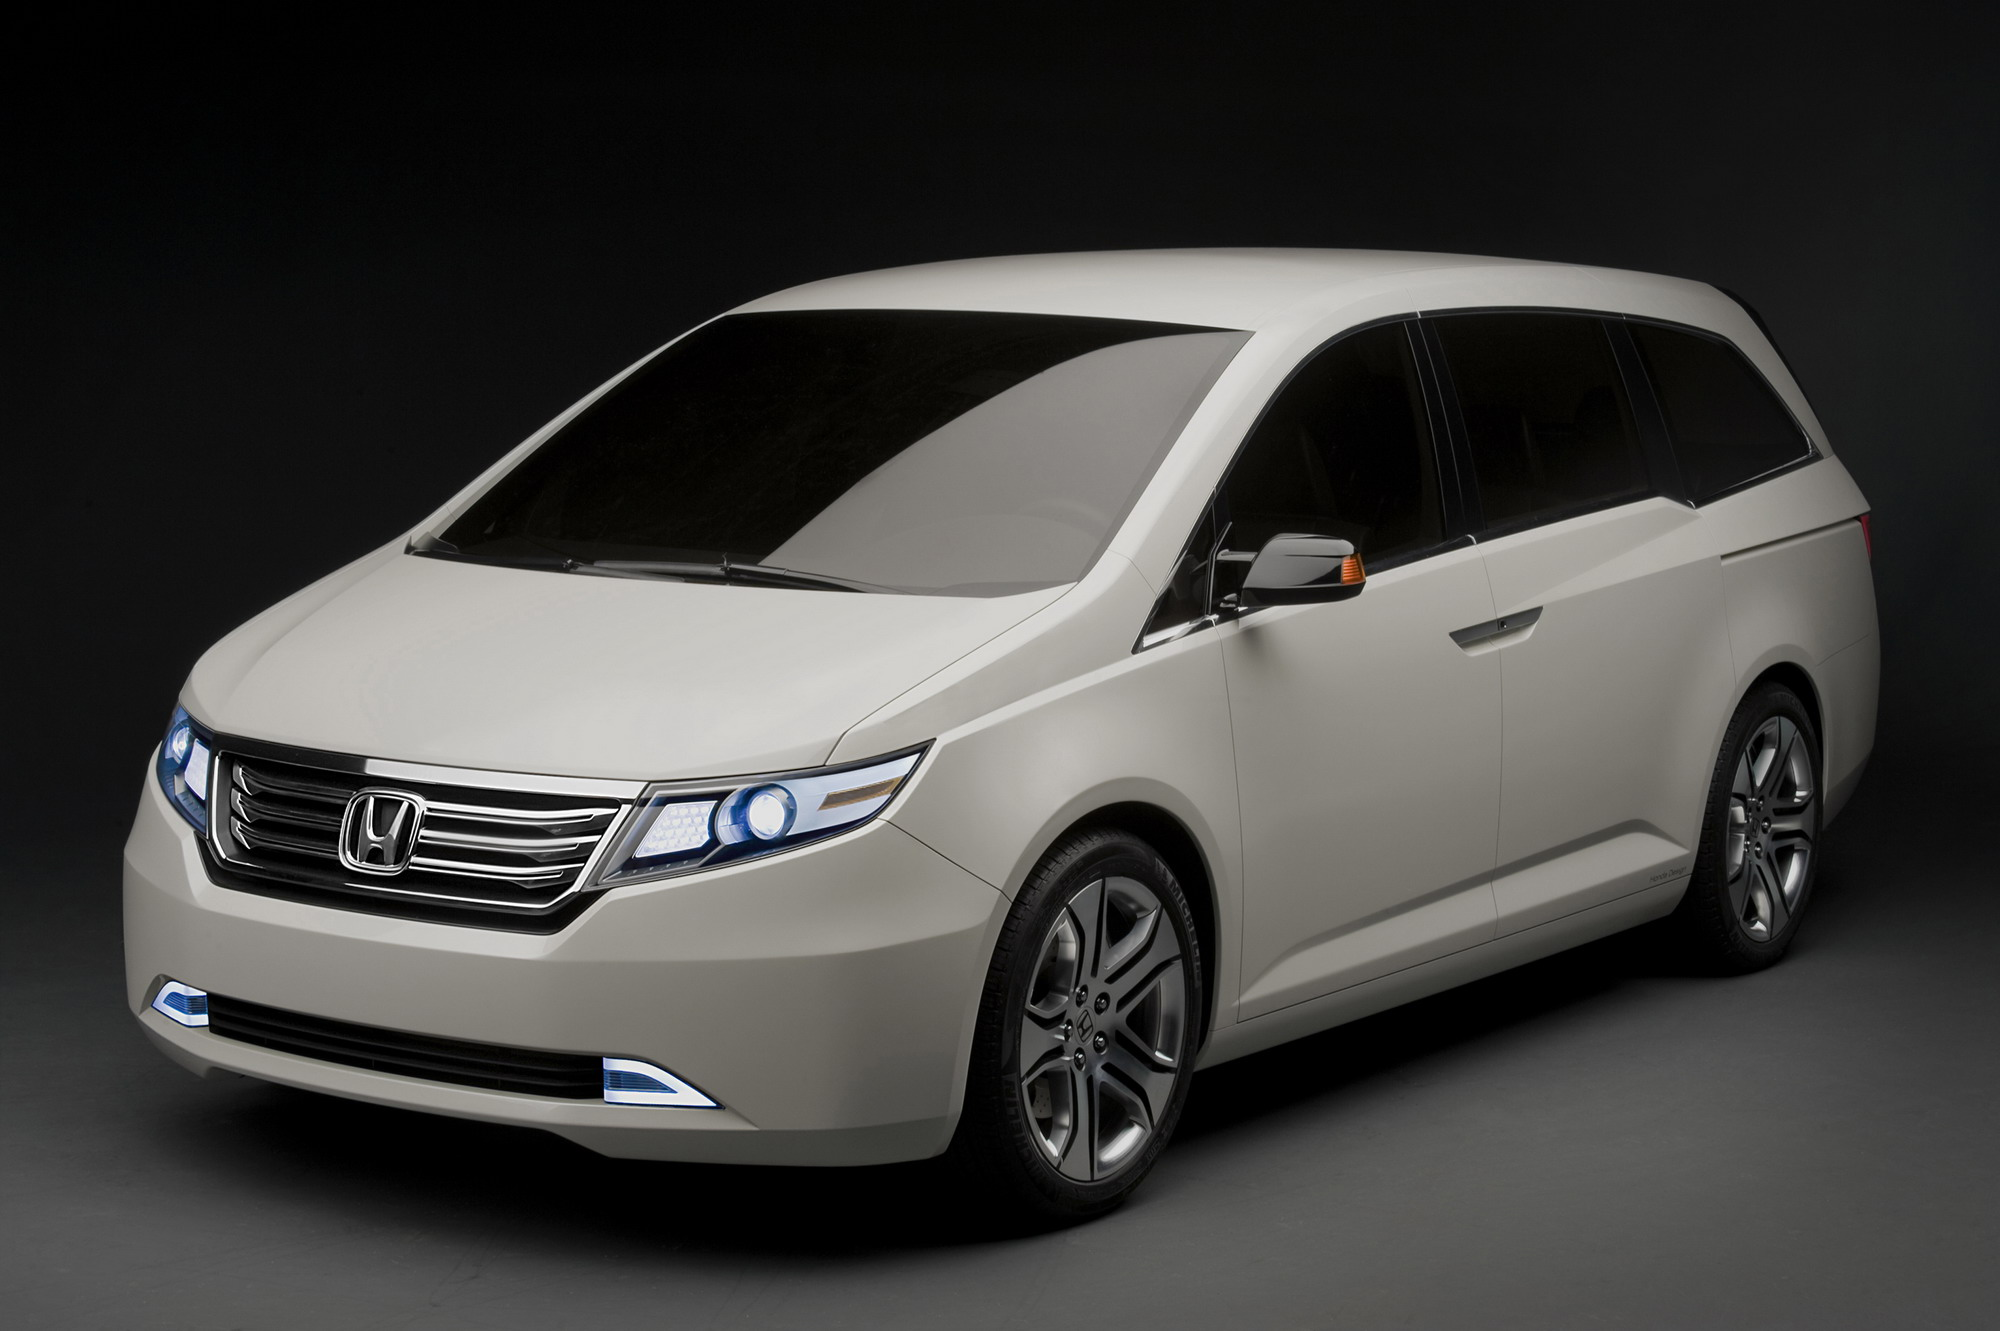 2010 honda odyssey concept review top speed. Black Bedroom Furniture Sets. Home Design Ideas